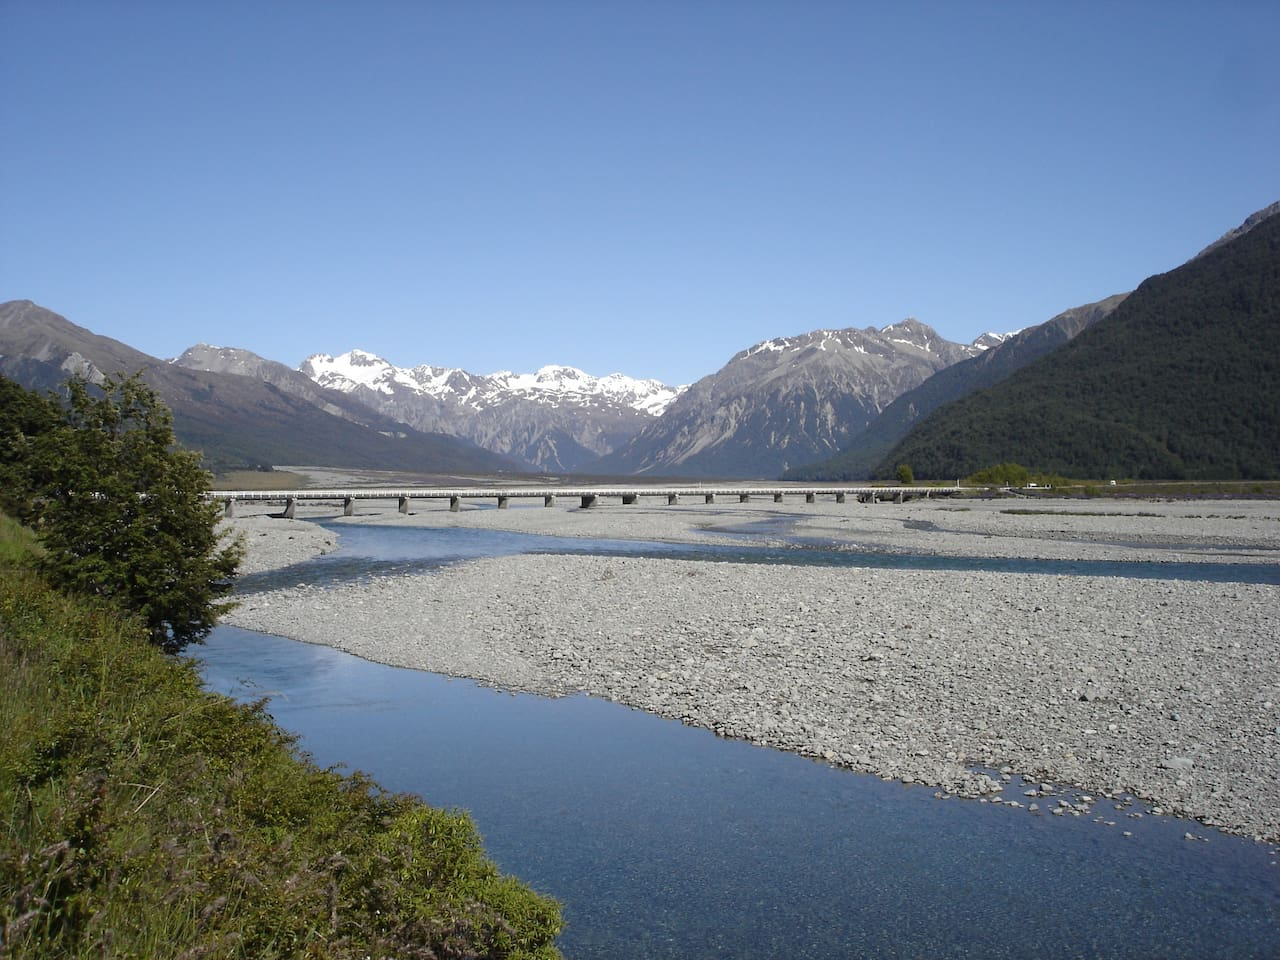 The Southern Alps and Waimakariri River from Bealey